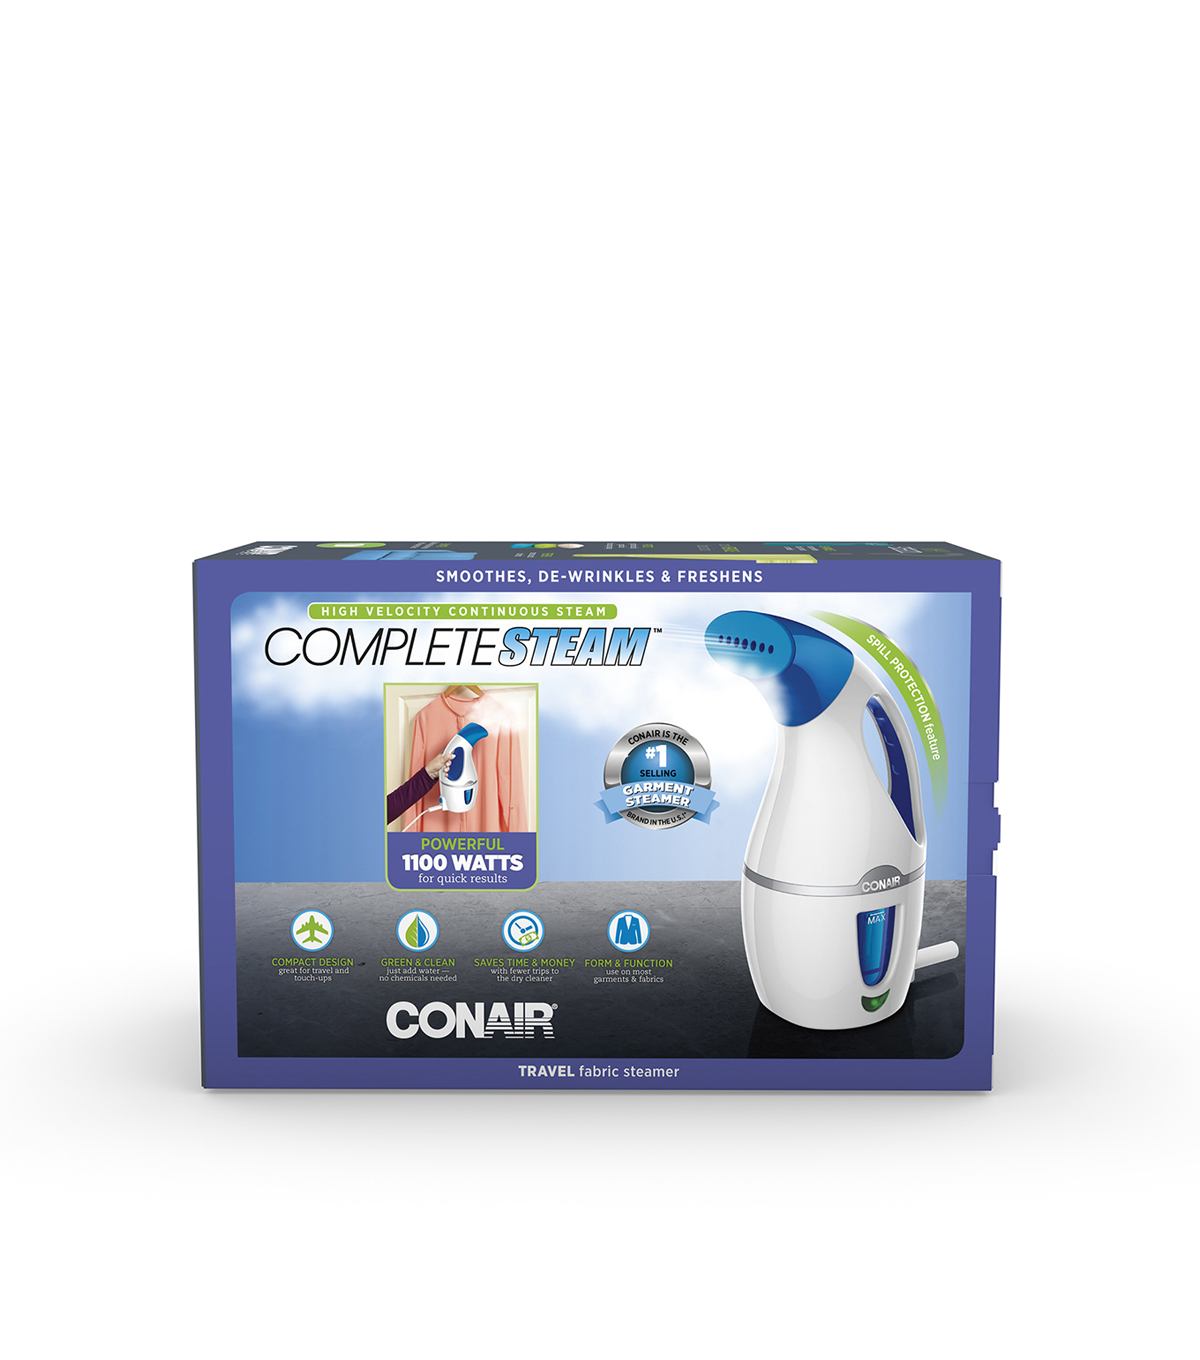 Conair CompleteSteam Travel Fabric Steamer